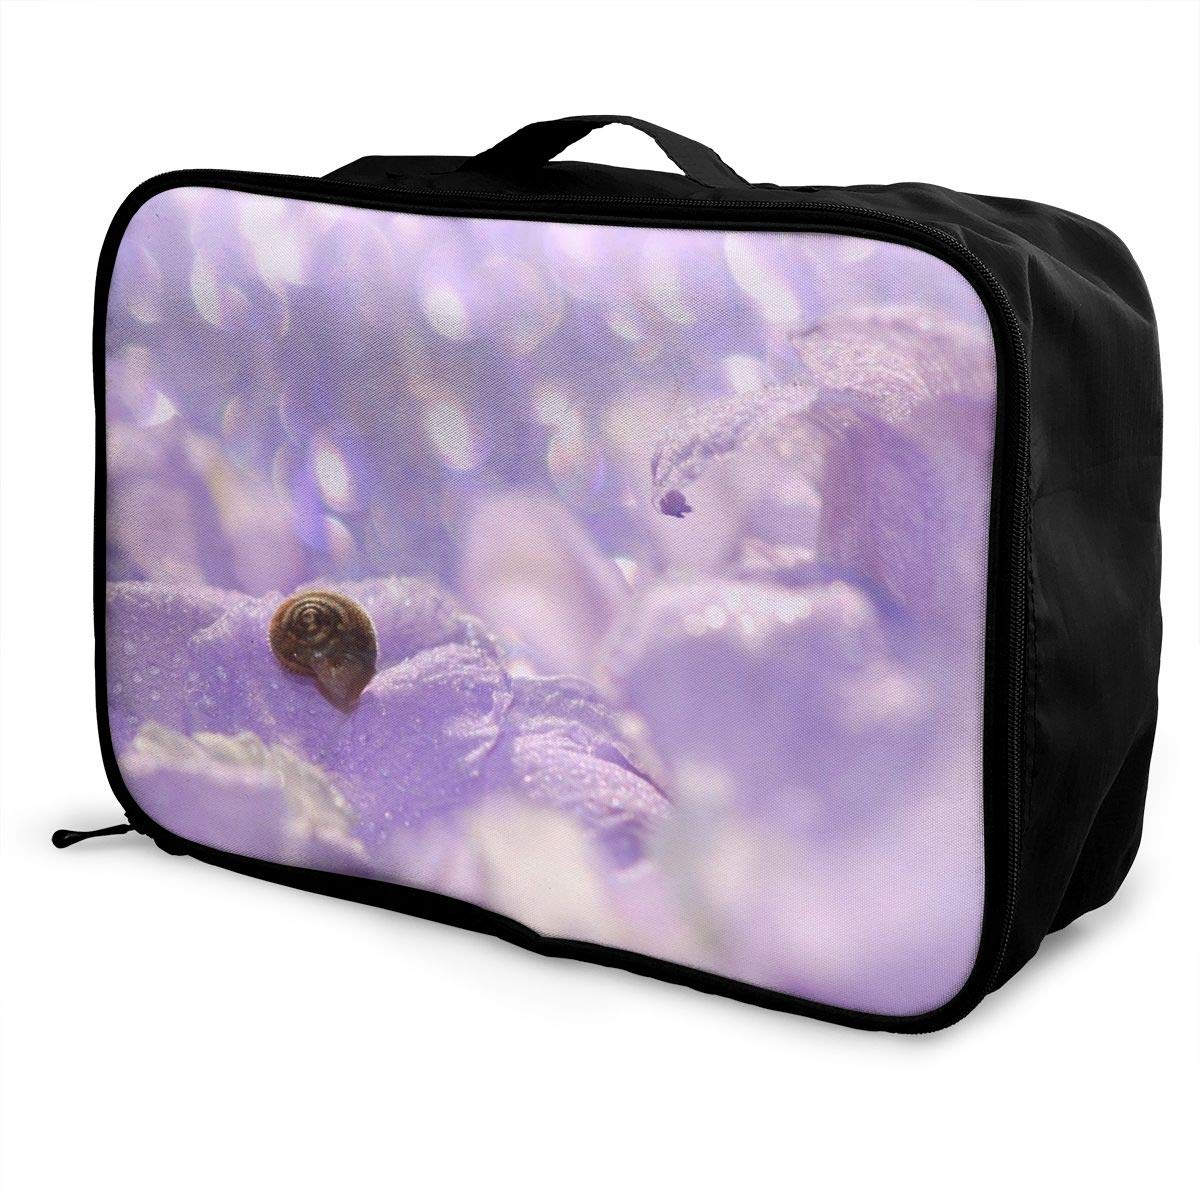 Flowers Flower Spring Pink Watercolor Travel Lightweight Waterproof Foldable Storage Carry Luggage Large Capacity Portable Luggage Bag Duffel Bag